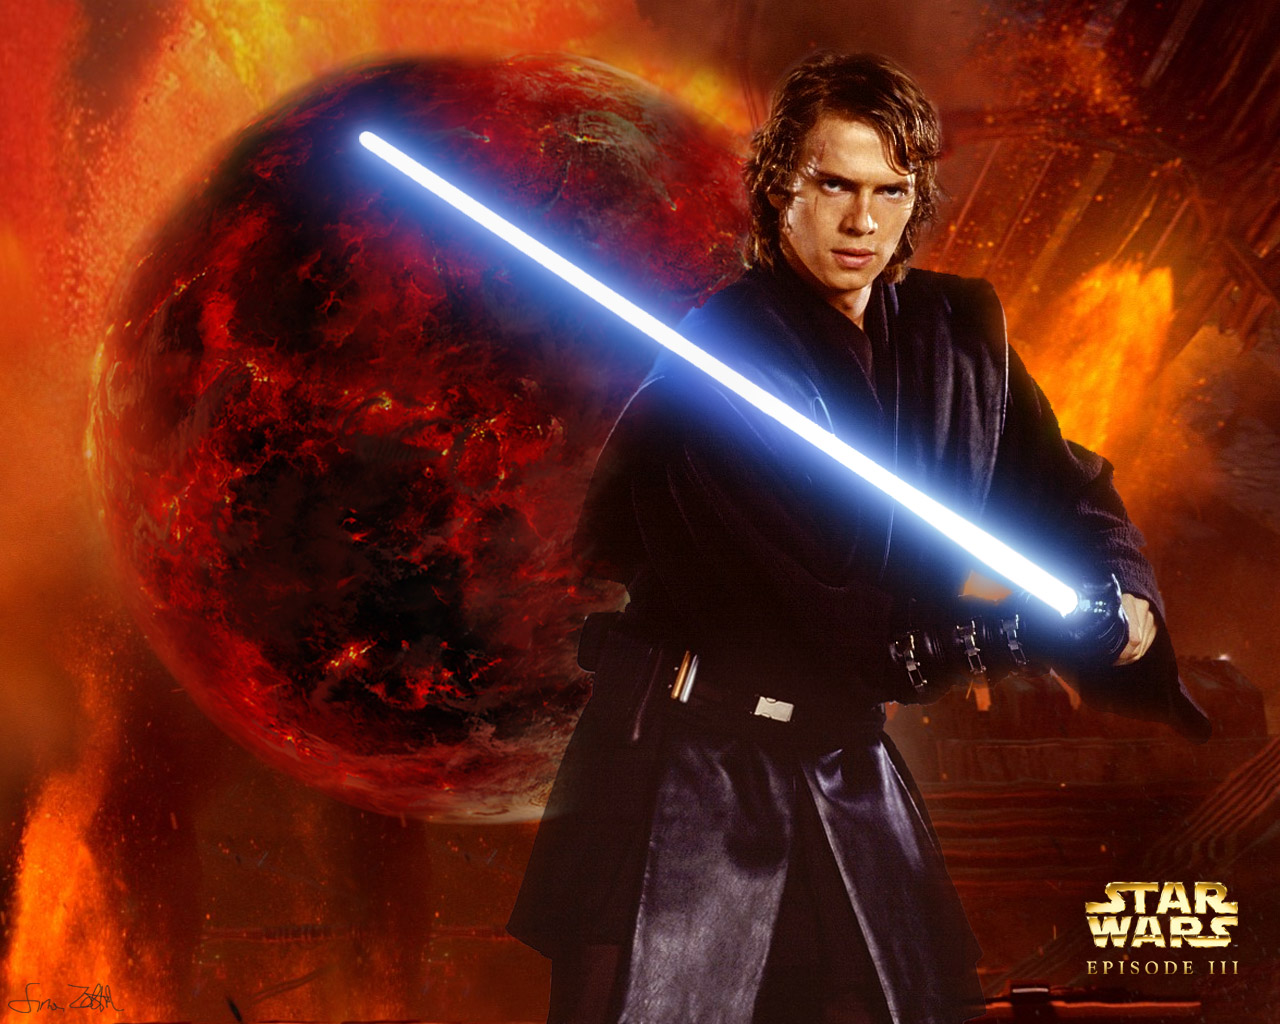 More Star Wars Saga Wallpapers   Star Wars Wallpaper 25692047 1280x1024